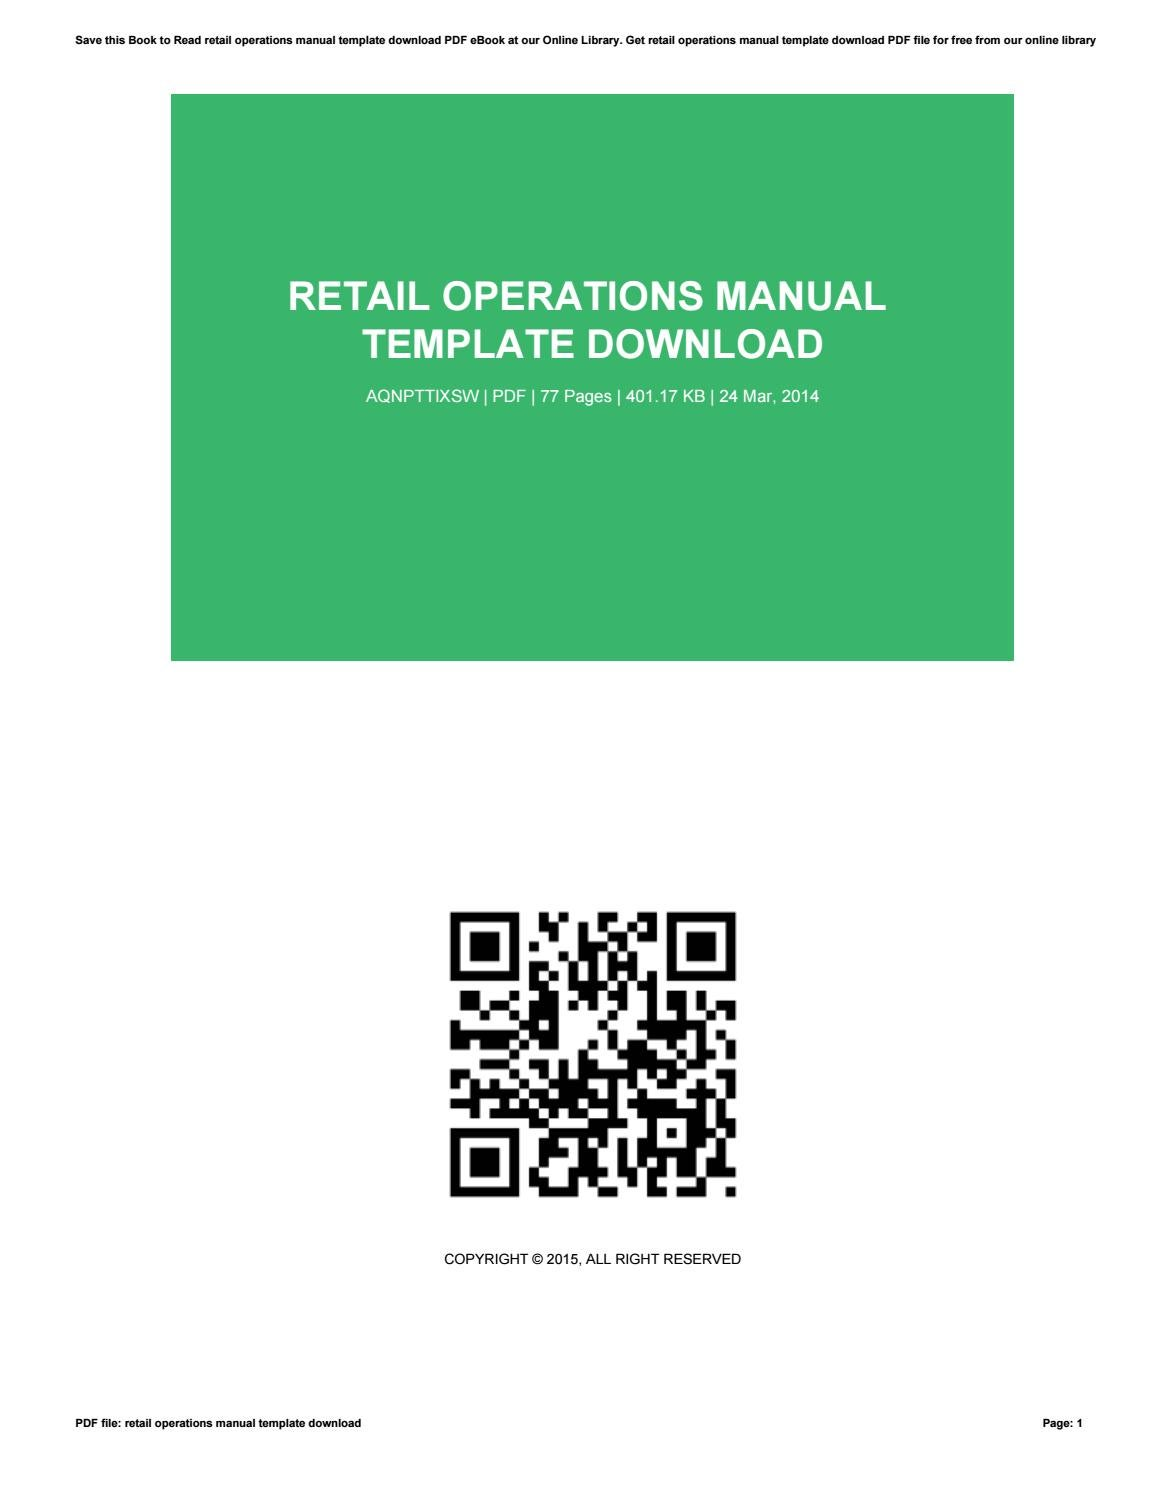 retail operations manual template download by carltonbartsch3210 issuu